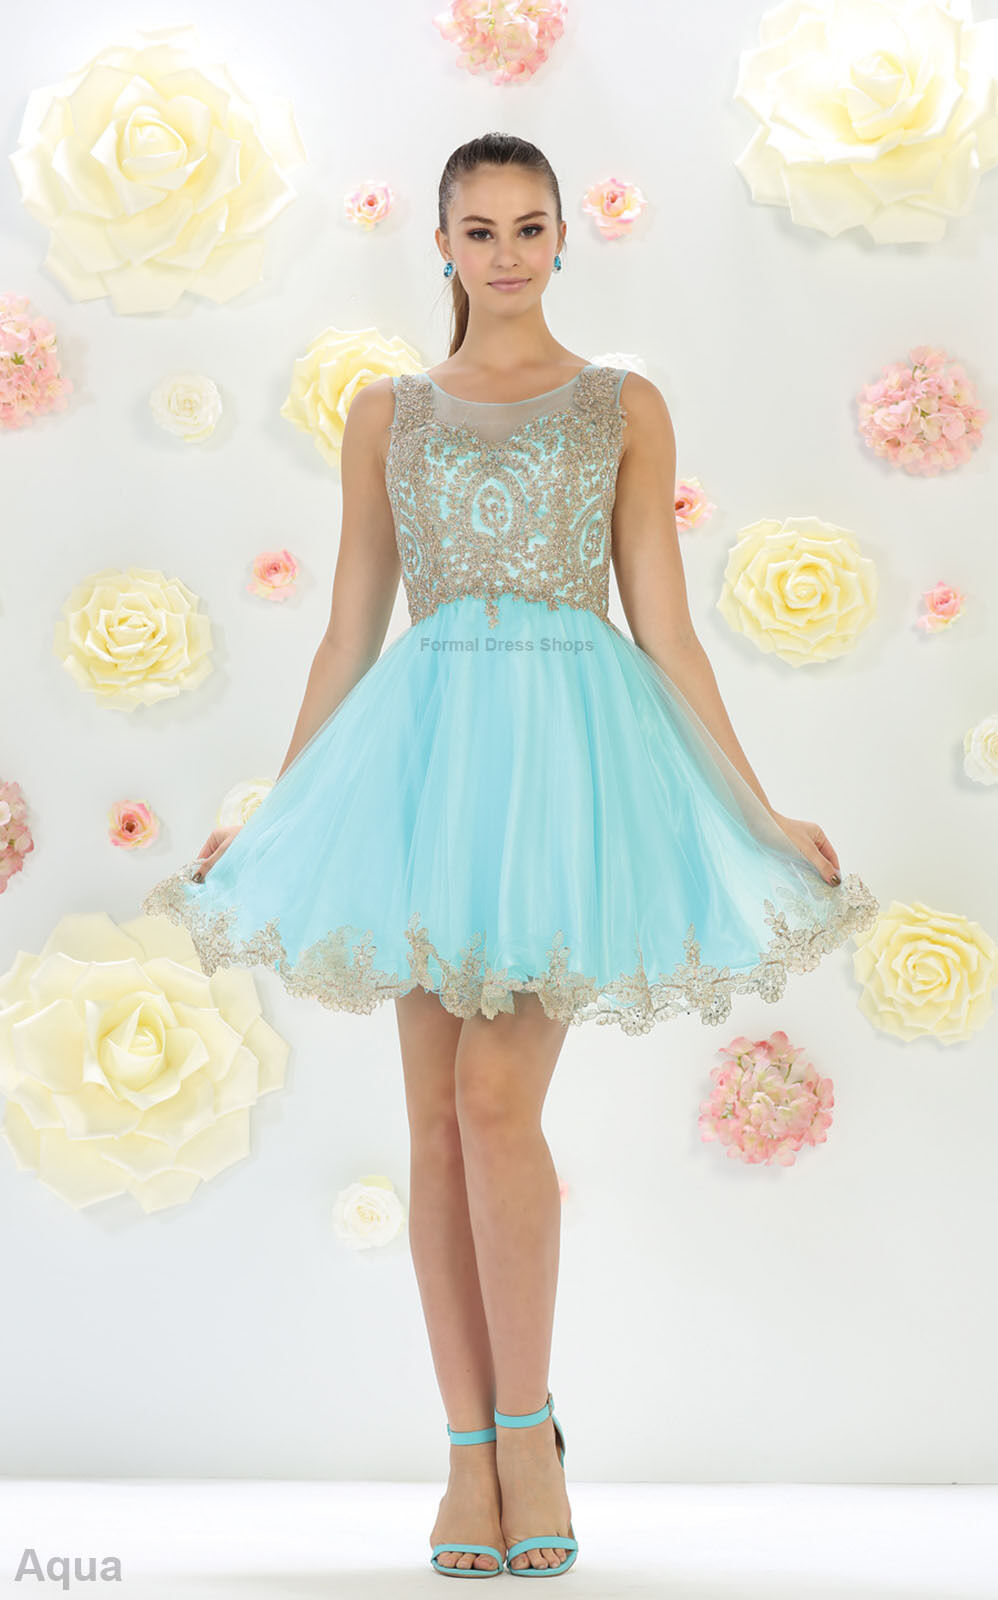 33bd7ad0dbb Details about NEW PROM DESIGNER SEMI FORMAL PROM SWEET 16 PAGEANT SHORT DRESS  HOMECOMING PARTY